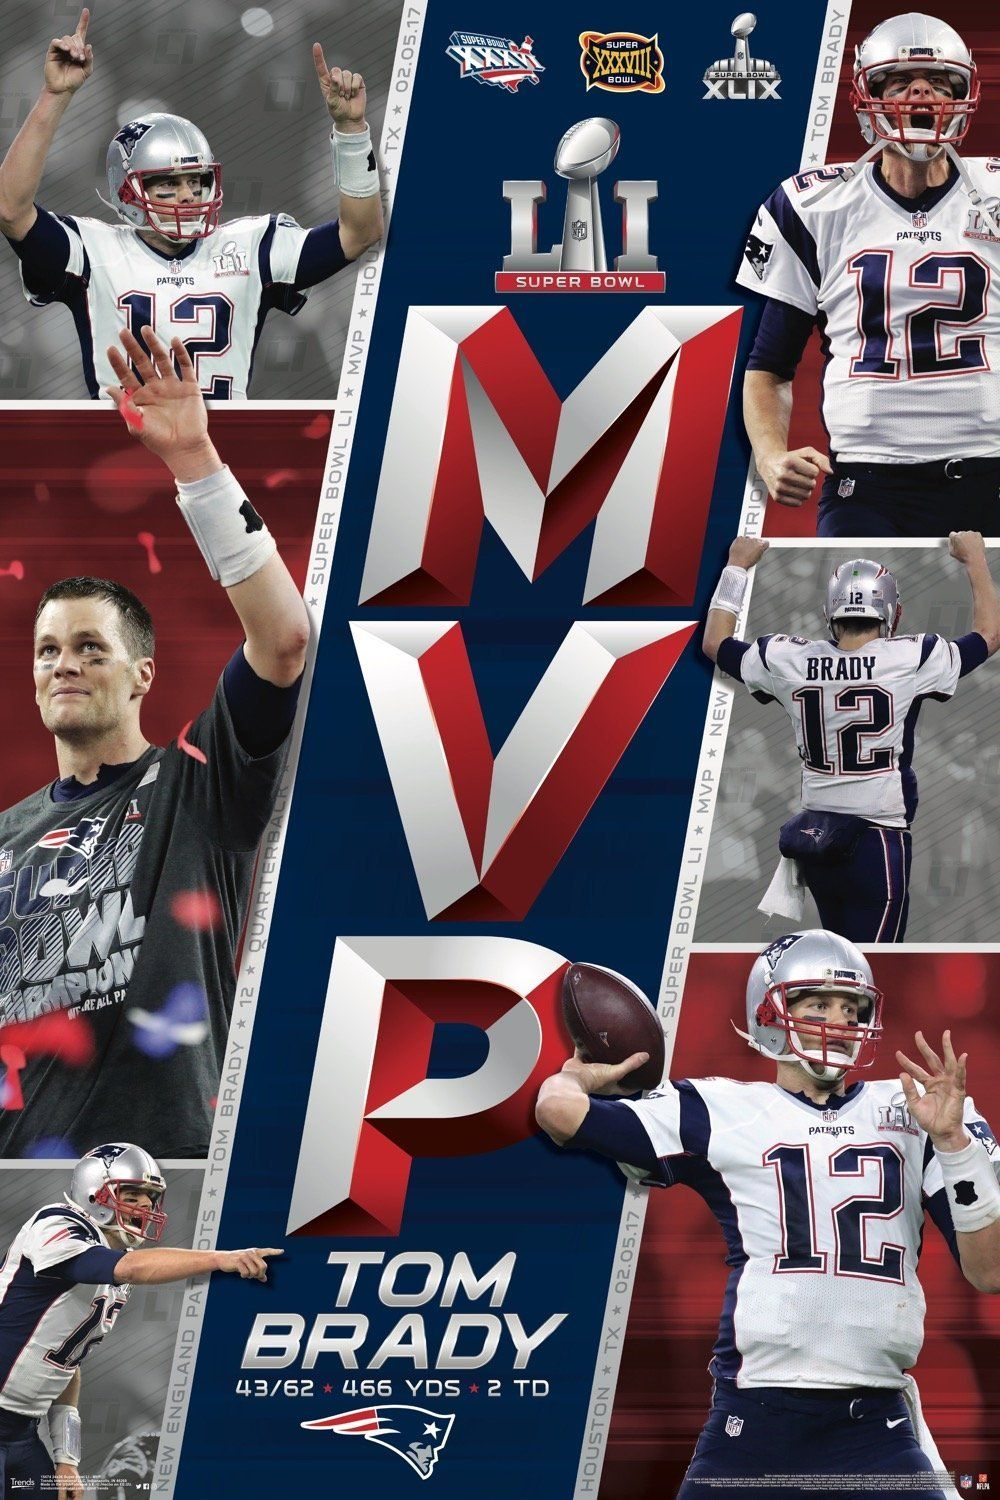 Super Bowl Li Mvp Tom Brady Poster Click For Details See More Sports Posters Like This One At Https Posterpi Super Bowl Li Tom Brady New England Patriots